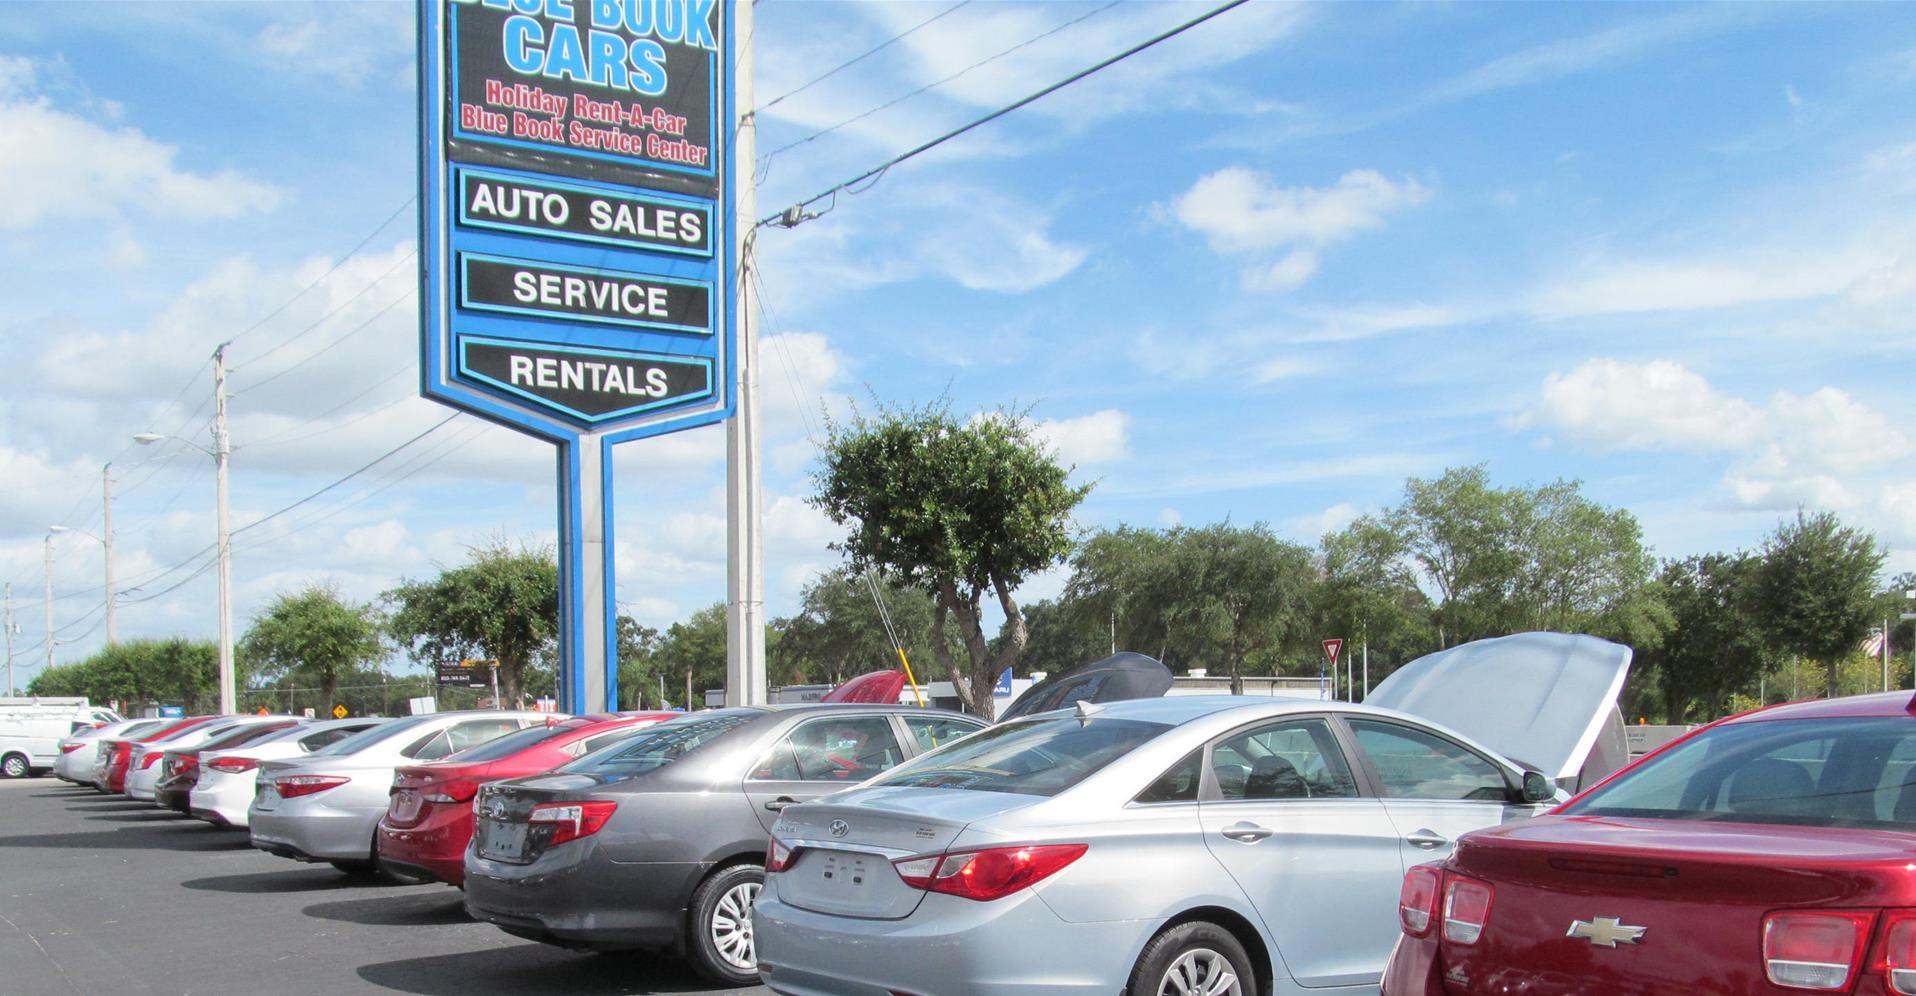 blue book cars sanford fl new used cars trucks sales service